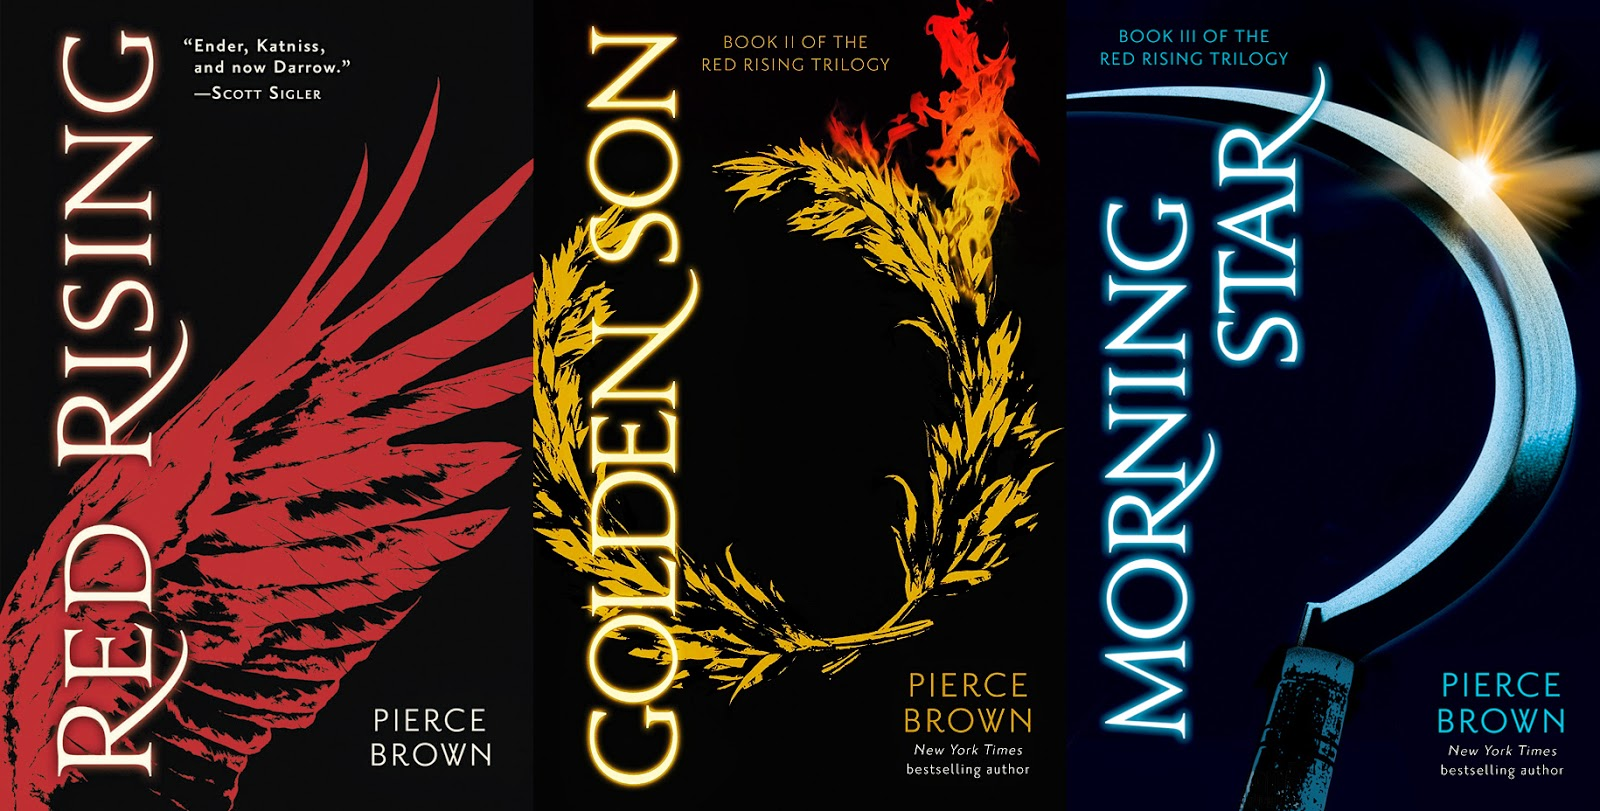 Red Rising Trilogy by Pierce Brown